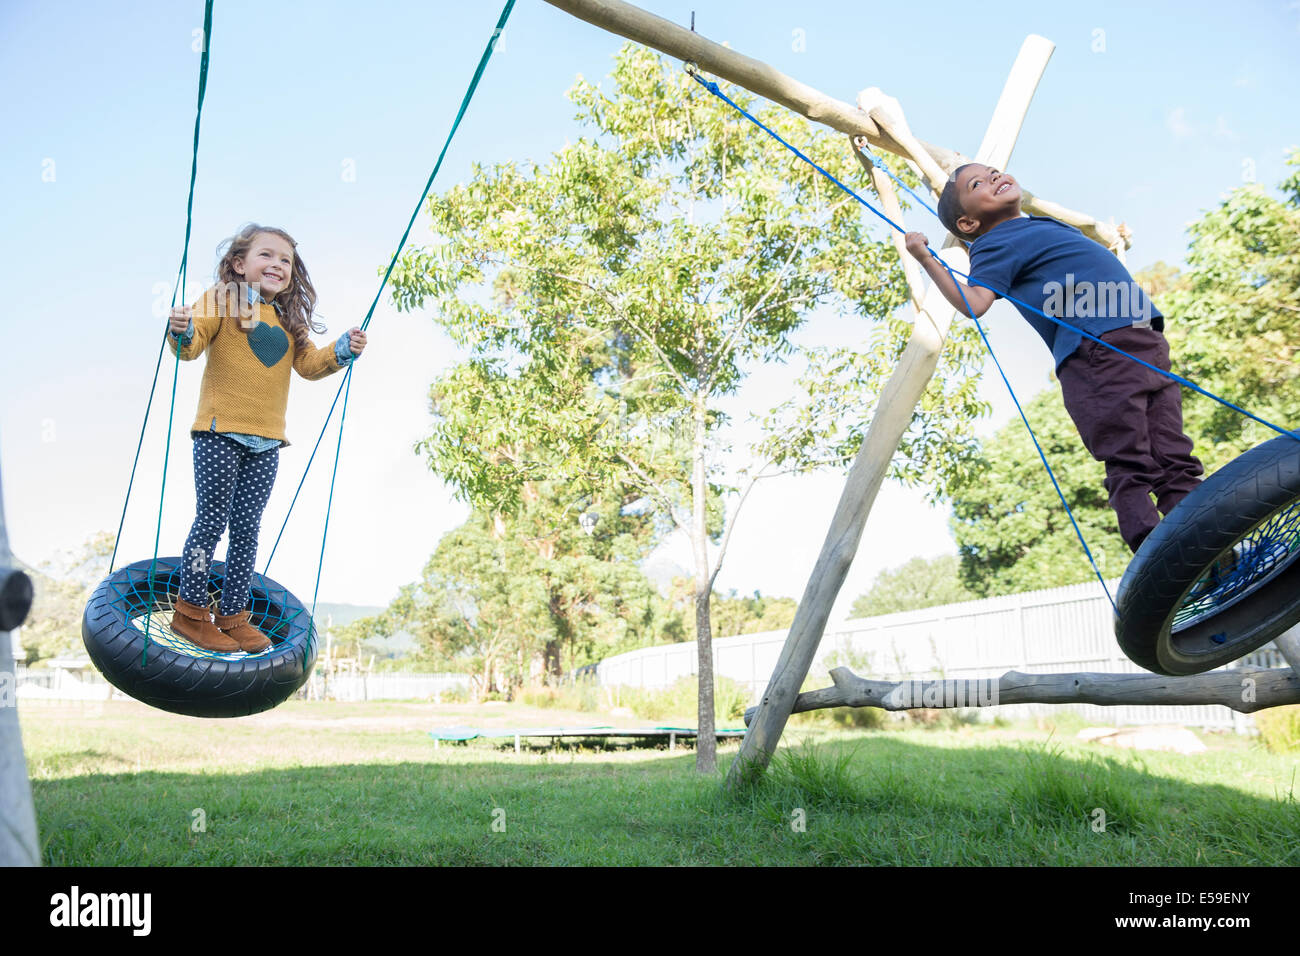 Children playing on tire swings - Stock Image